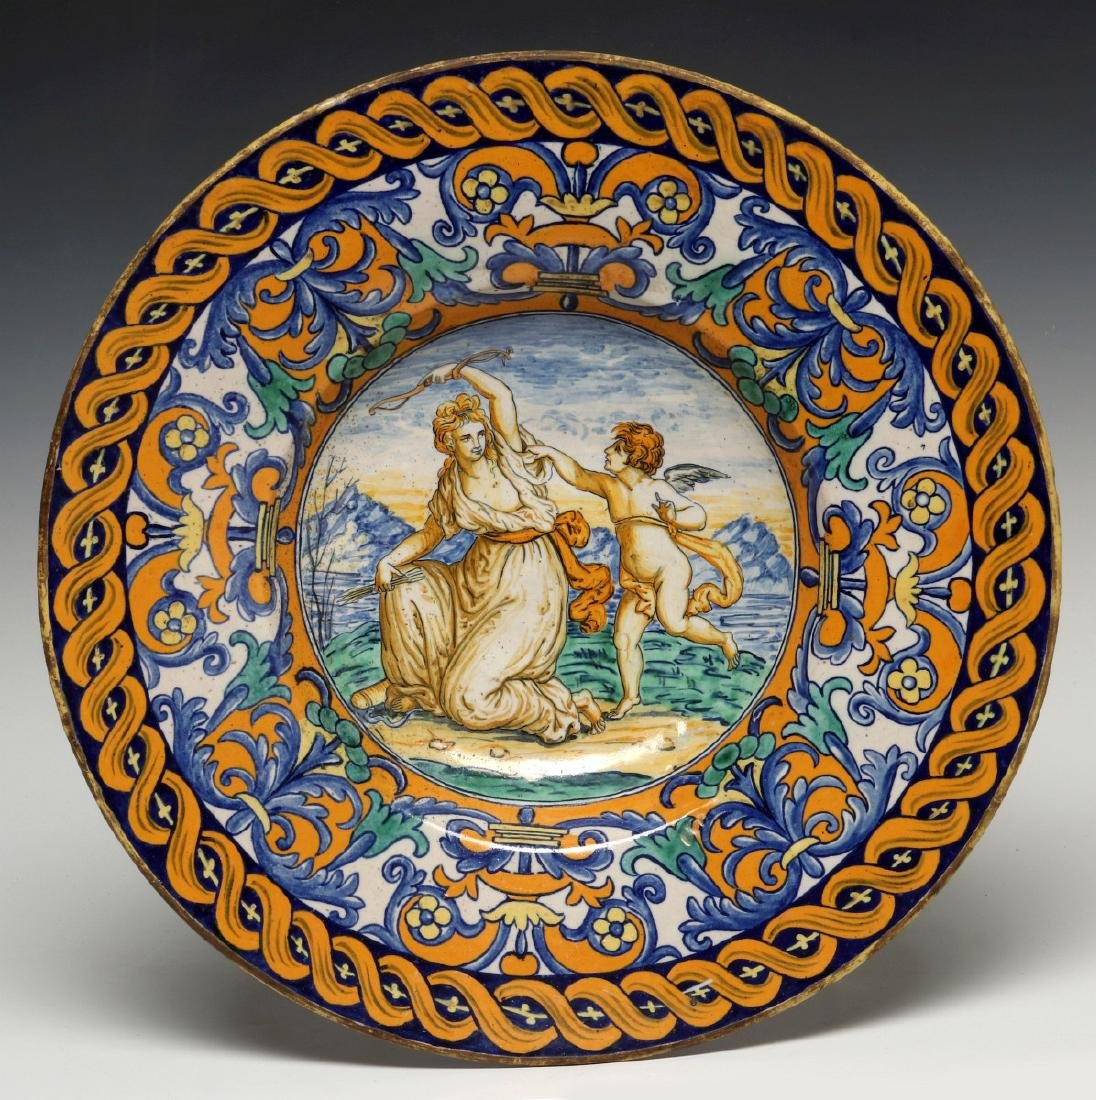 A MIDDLE 19TH C. ITALIAN MAIOLICA FAIENCE CHARGER